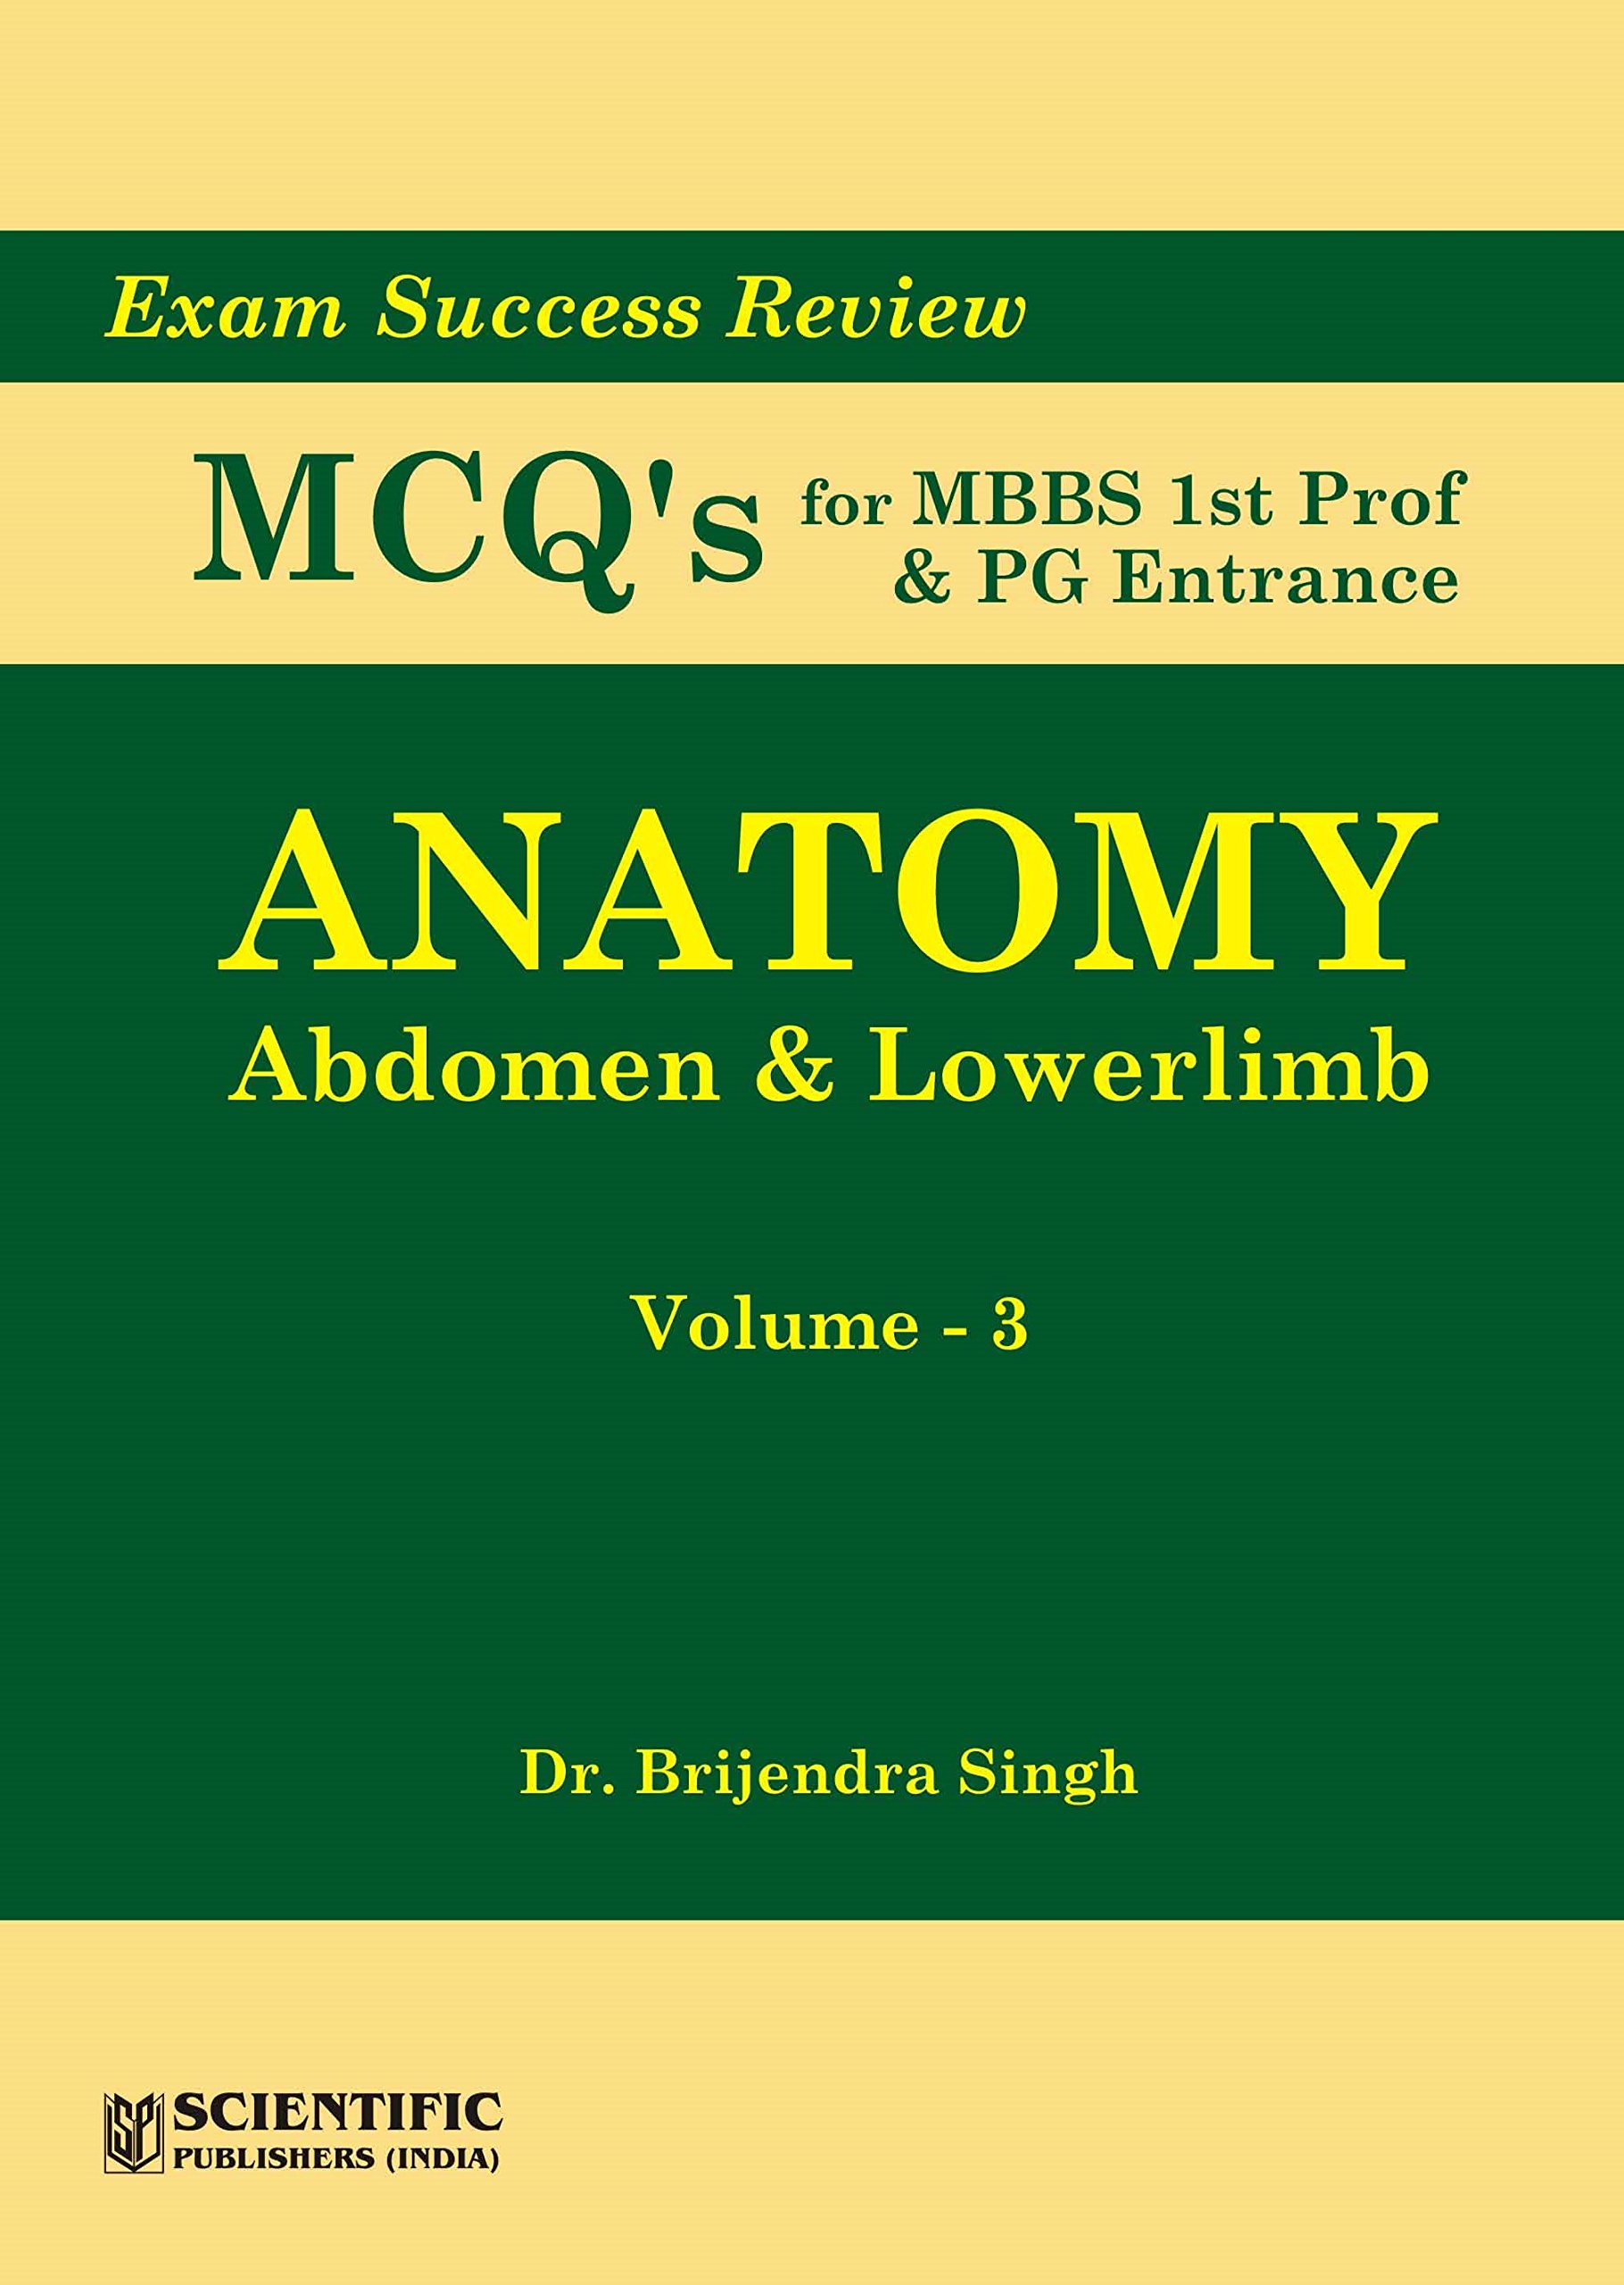 Buy Anatomy Abdomen Lowerlimb Vol 3 Exam Success Review Mcqs